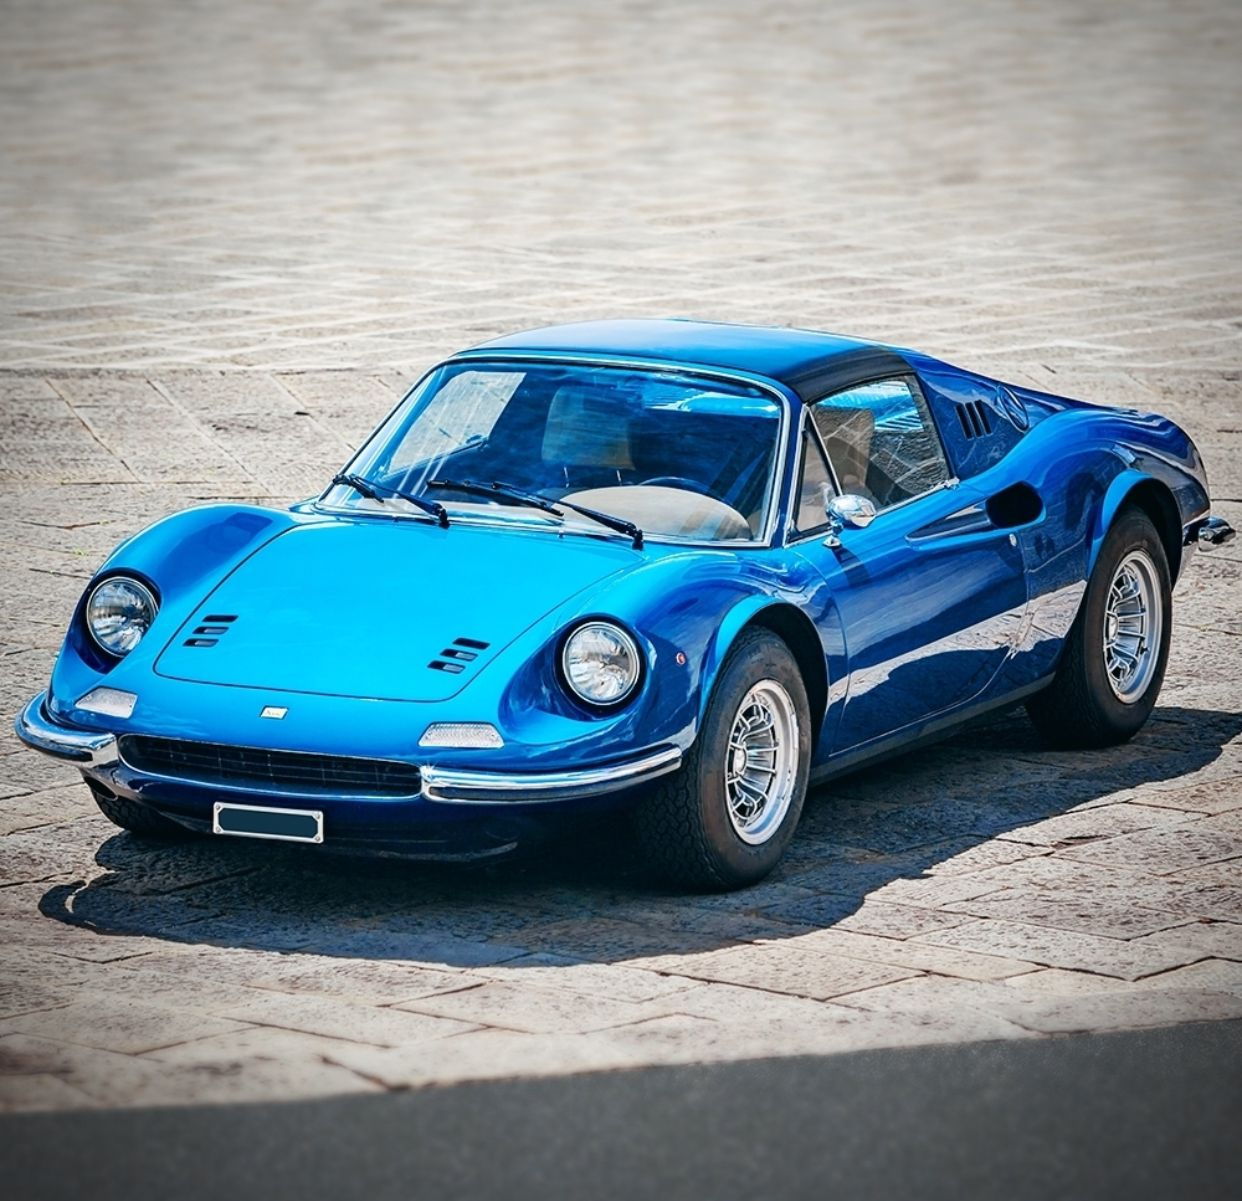 Dino 246 Gts Expensive Sports Cars Most Expensive Sports Car